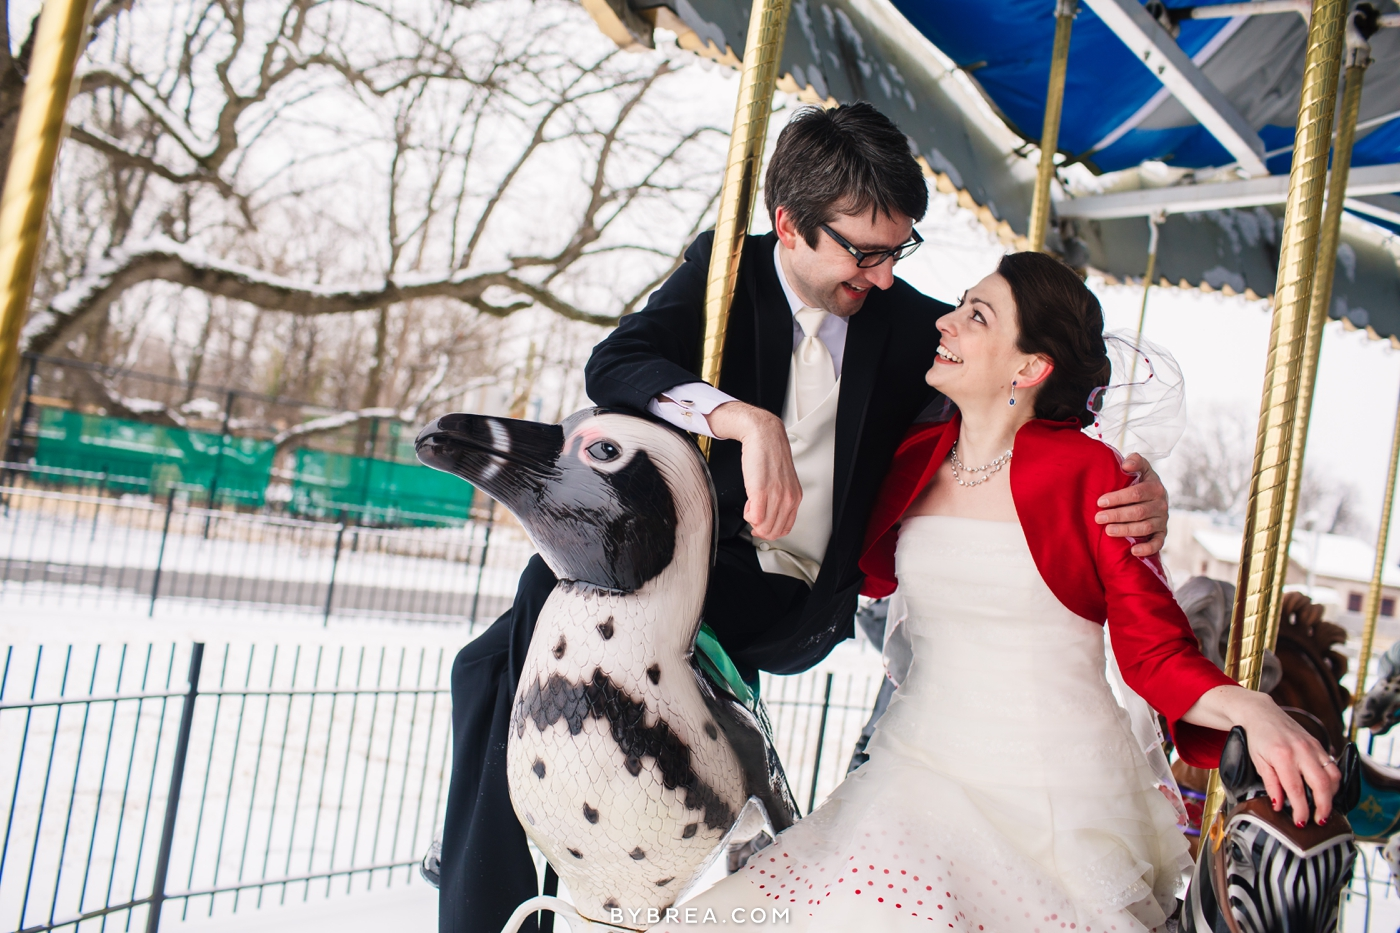 Maryland Zoo In Baltimore Wedding Photo Bride And Groom Riding Carousel